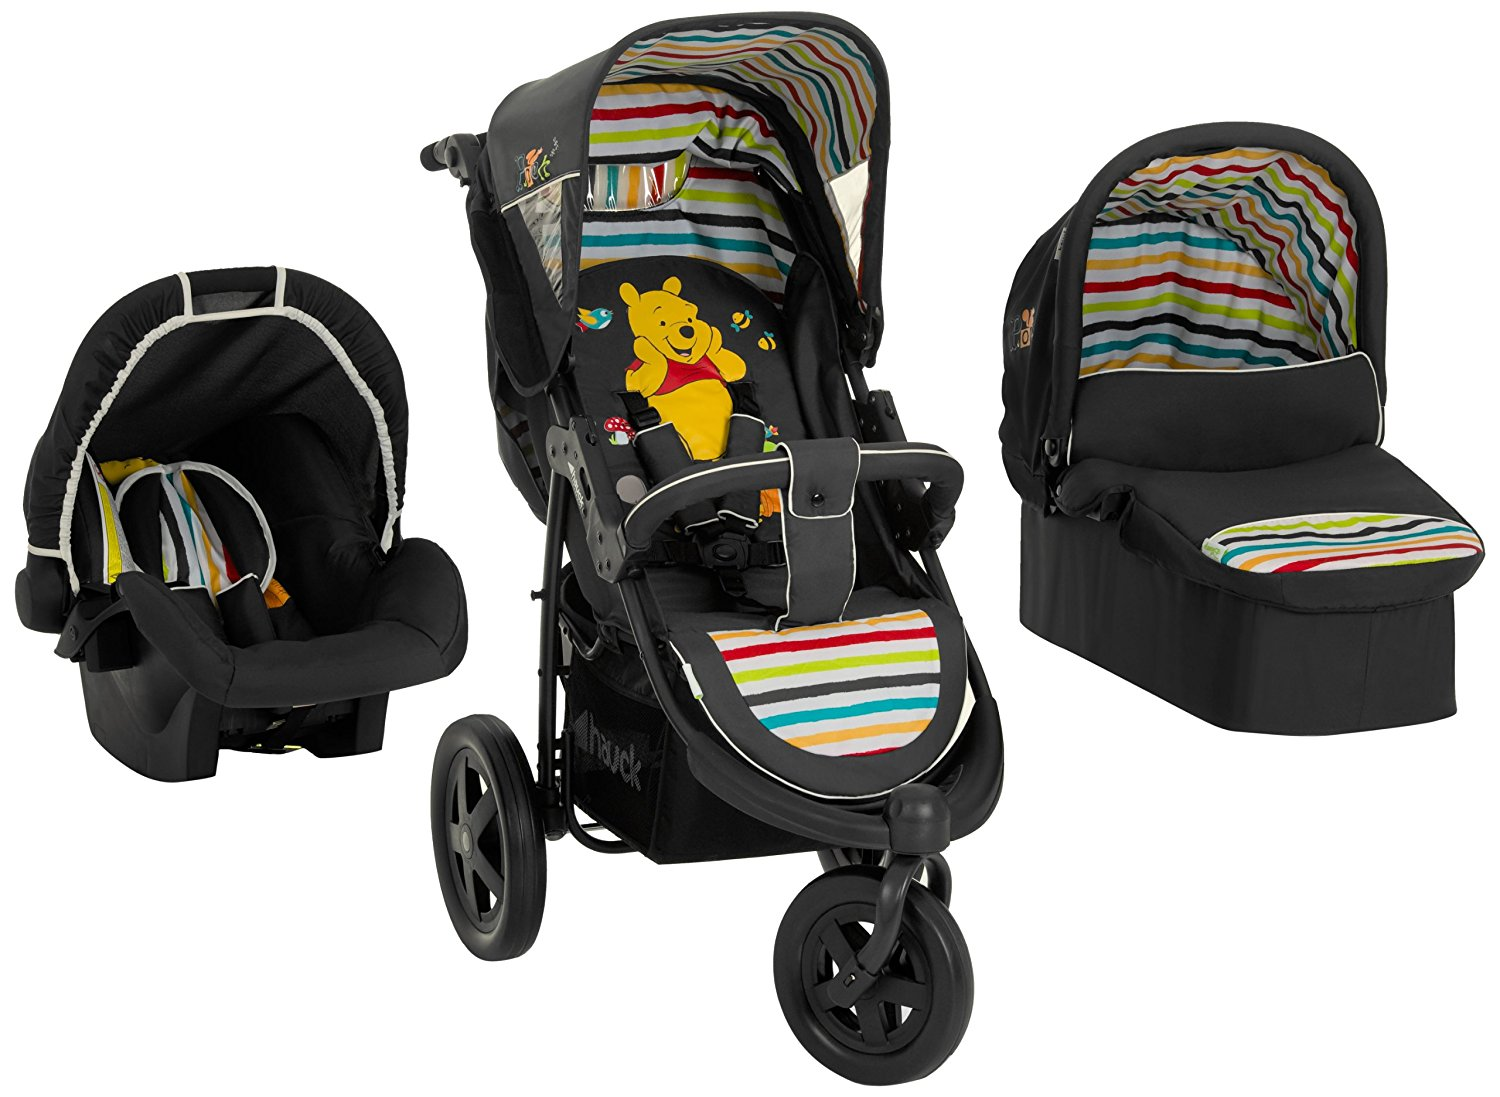 hauck disney baby viper trio set from birth travel system car seat carry cot and raincover 3. Black Bedroom Furniture Sets. Home Design Ideas